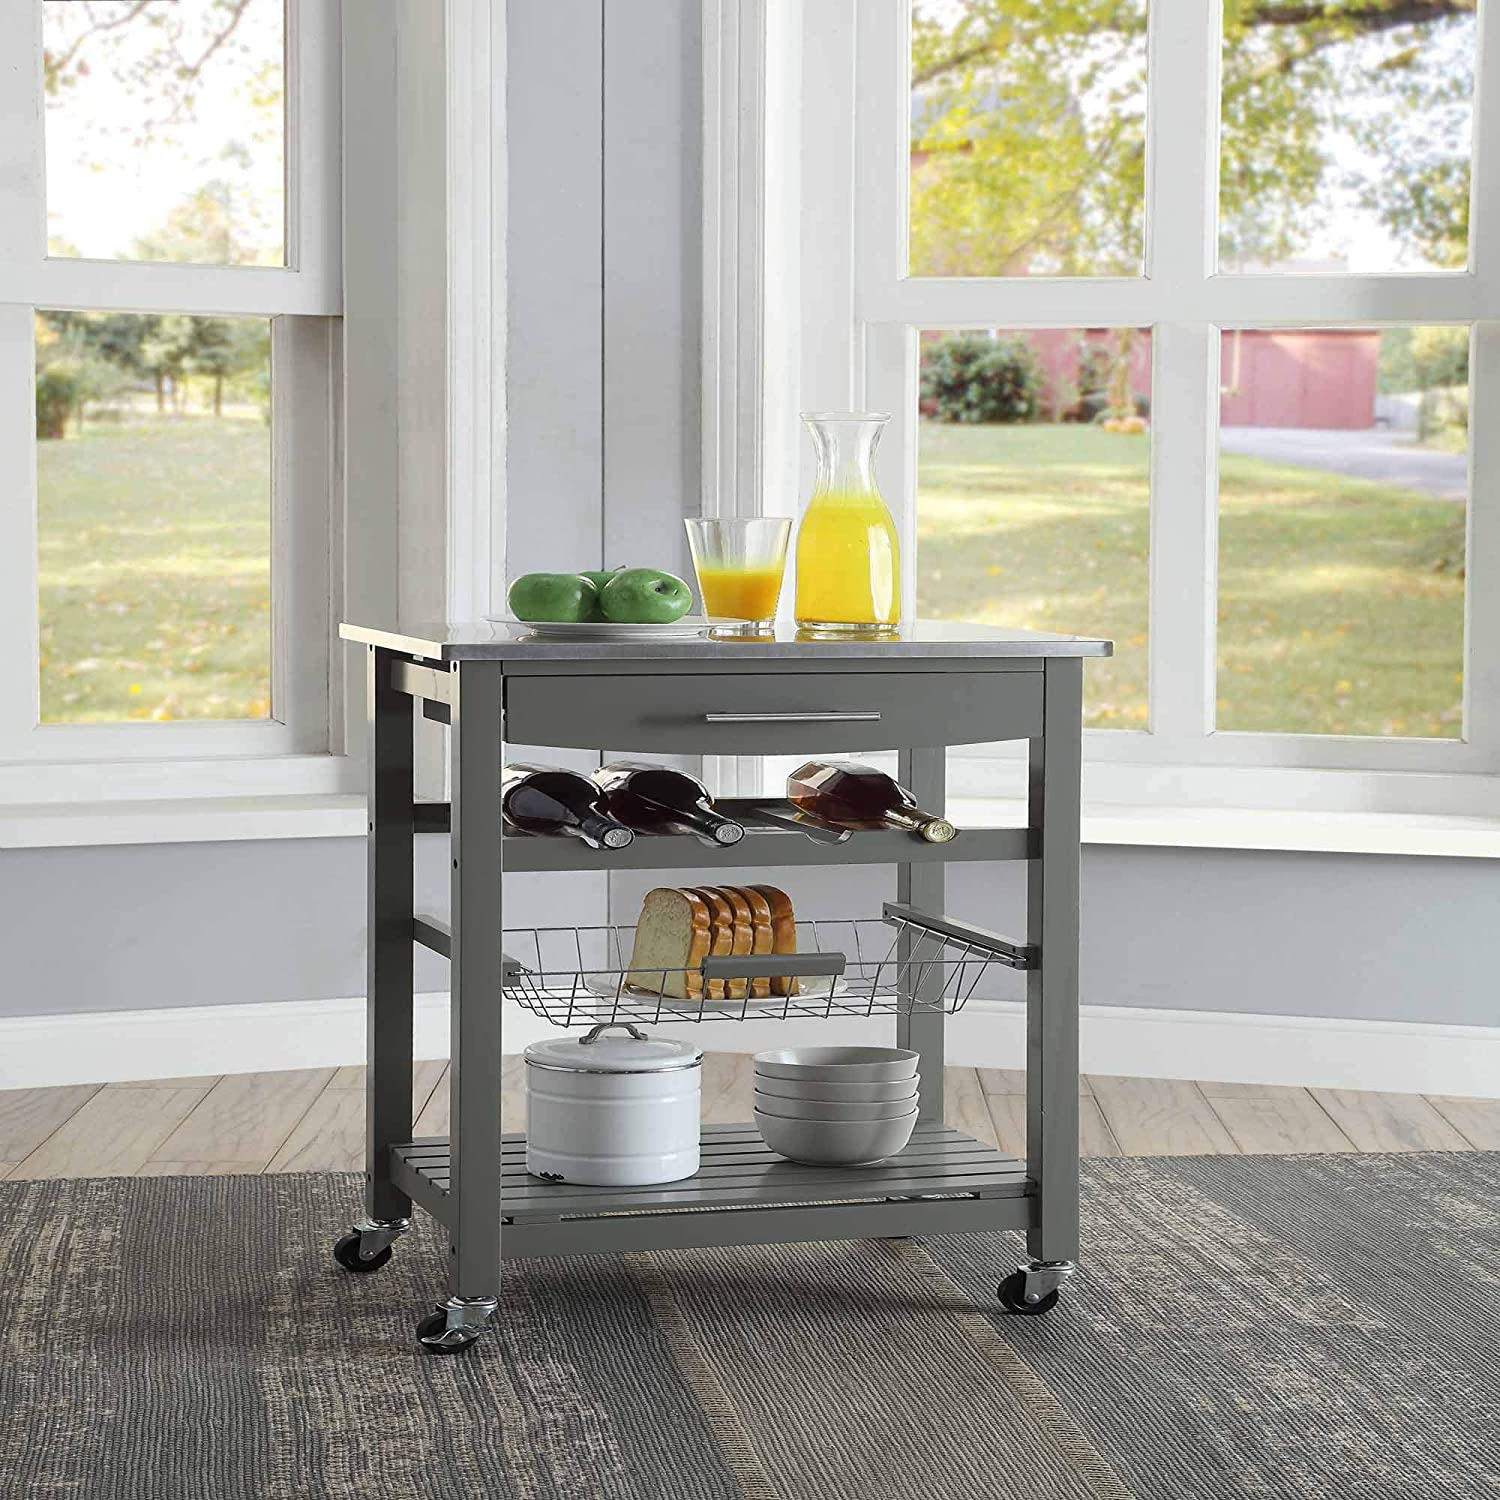 Linon Home D/écor Kitchen Cart Gray